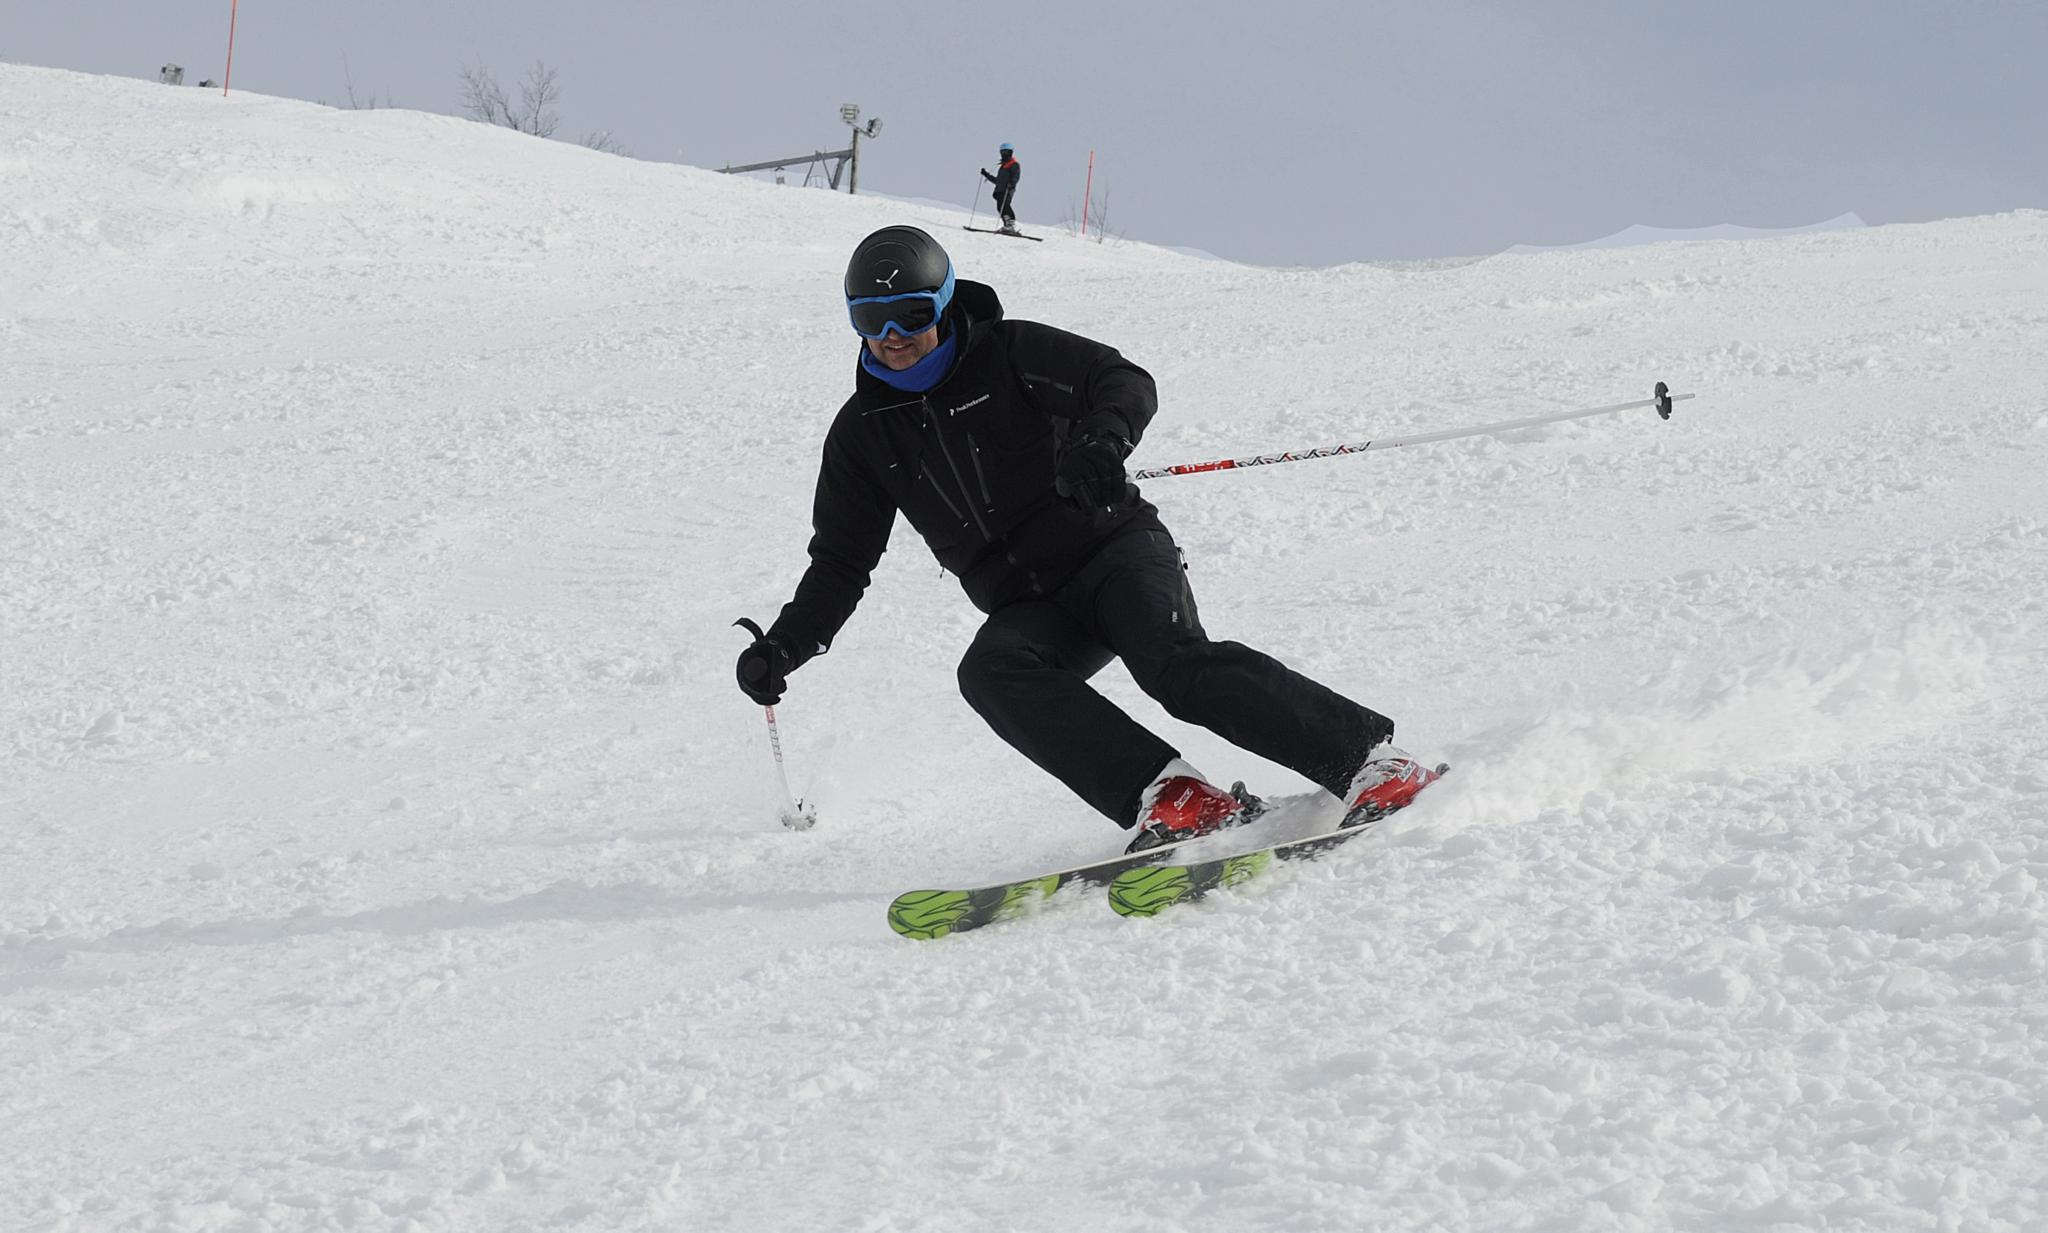 Lennart in the slope by lennor_65